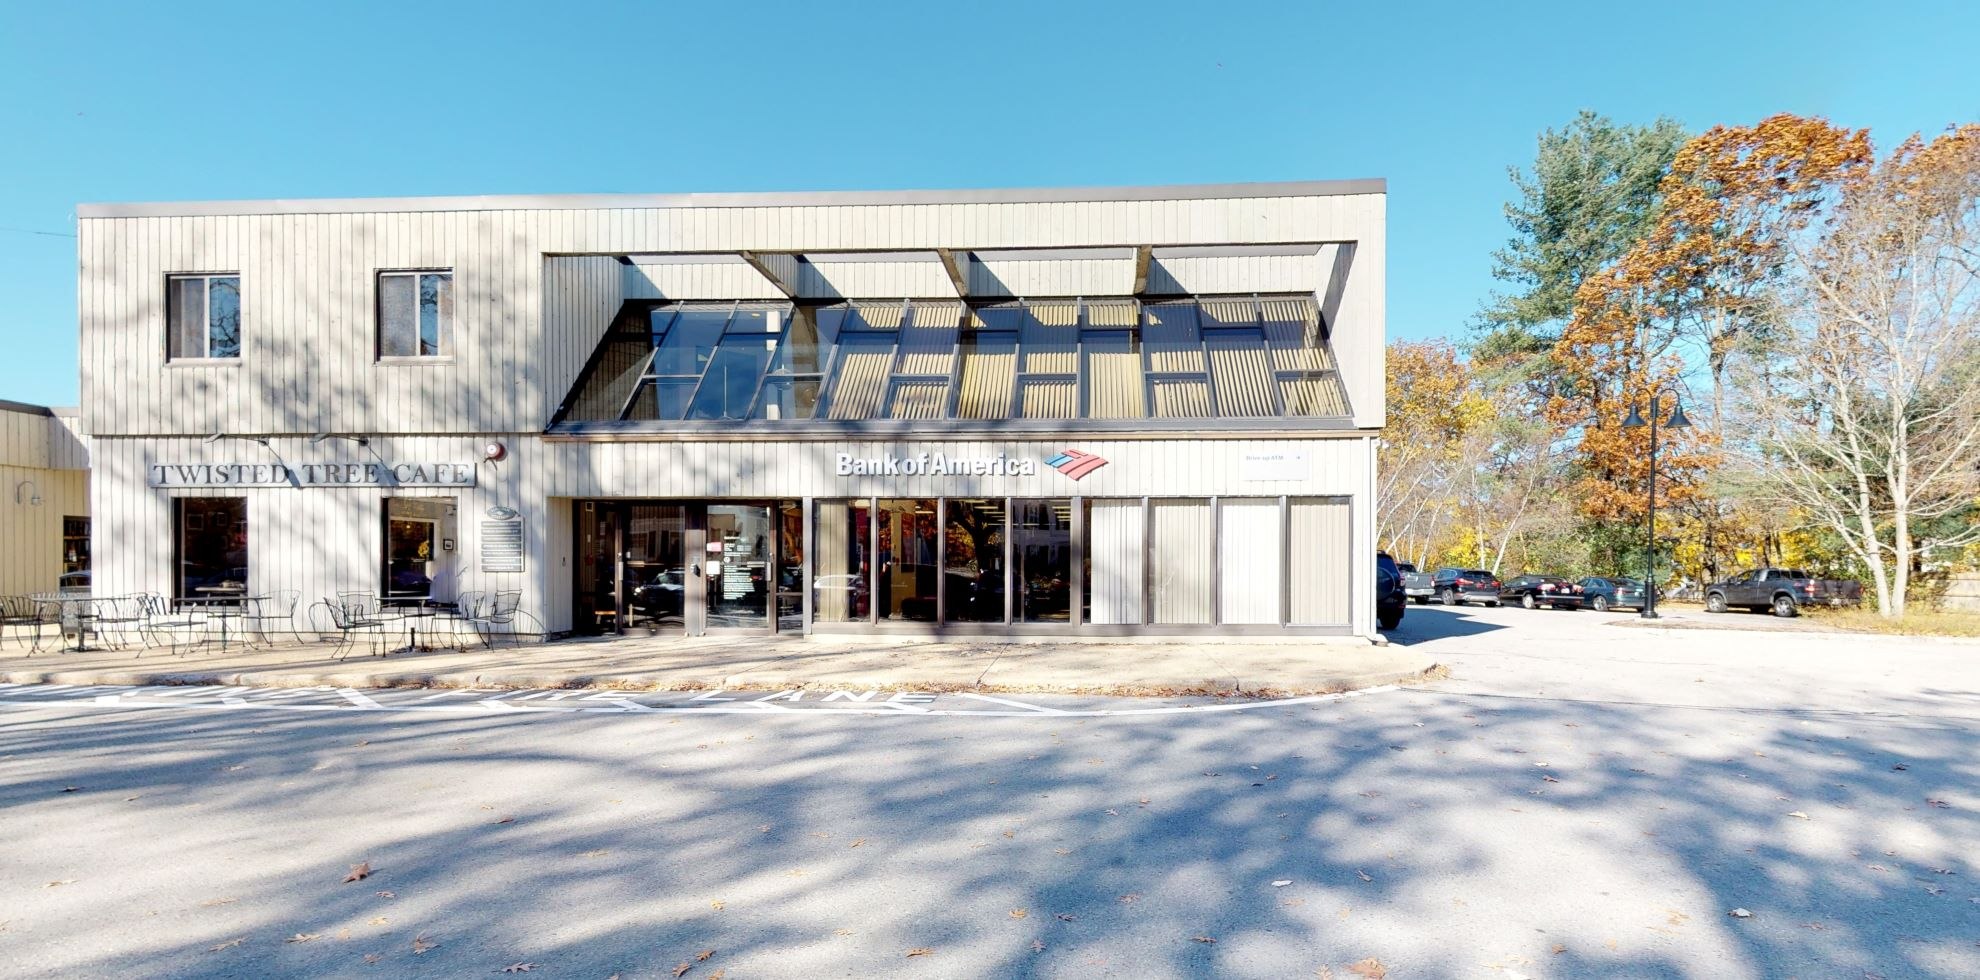 Bank of America financial center with drive-thru ATM   145 Lincoln Rd, Lincoln, MA 01773